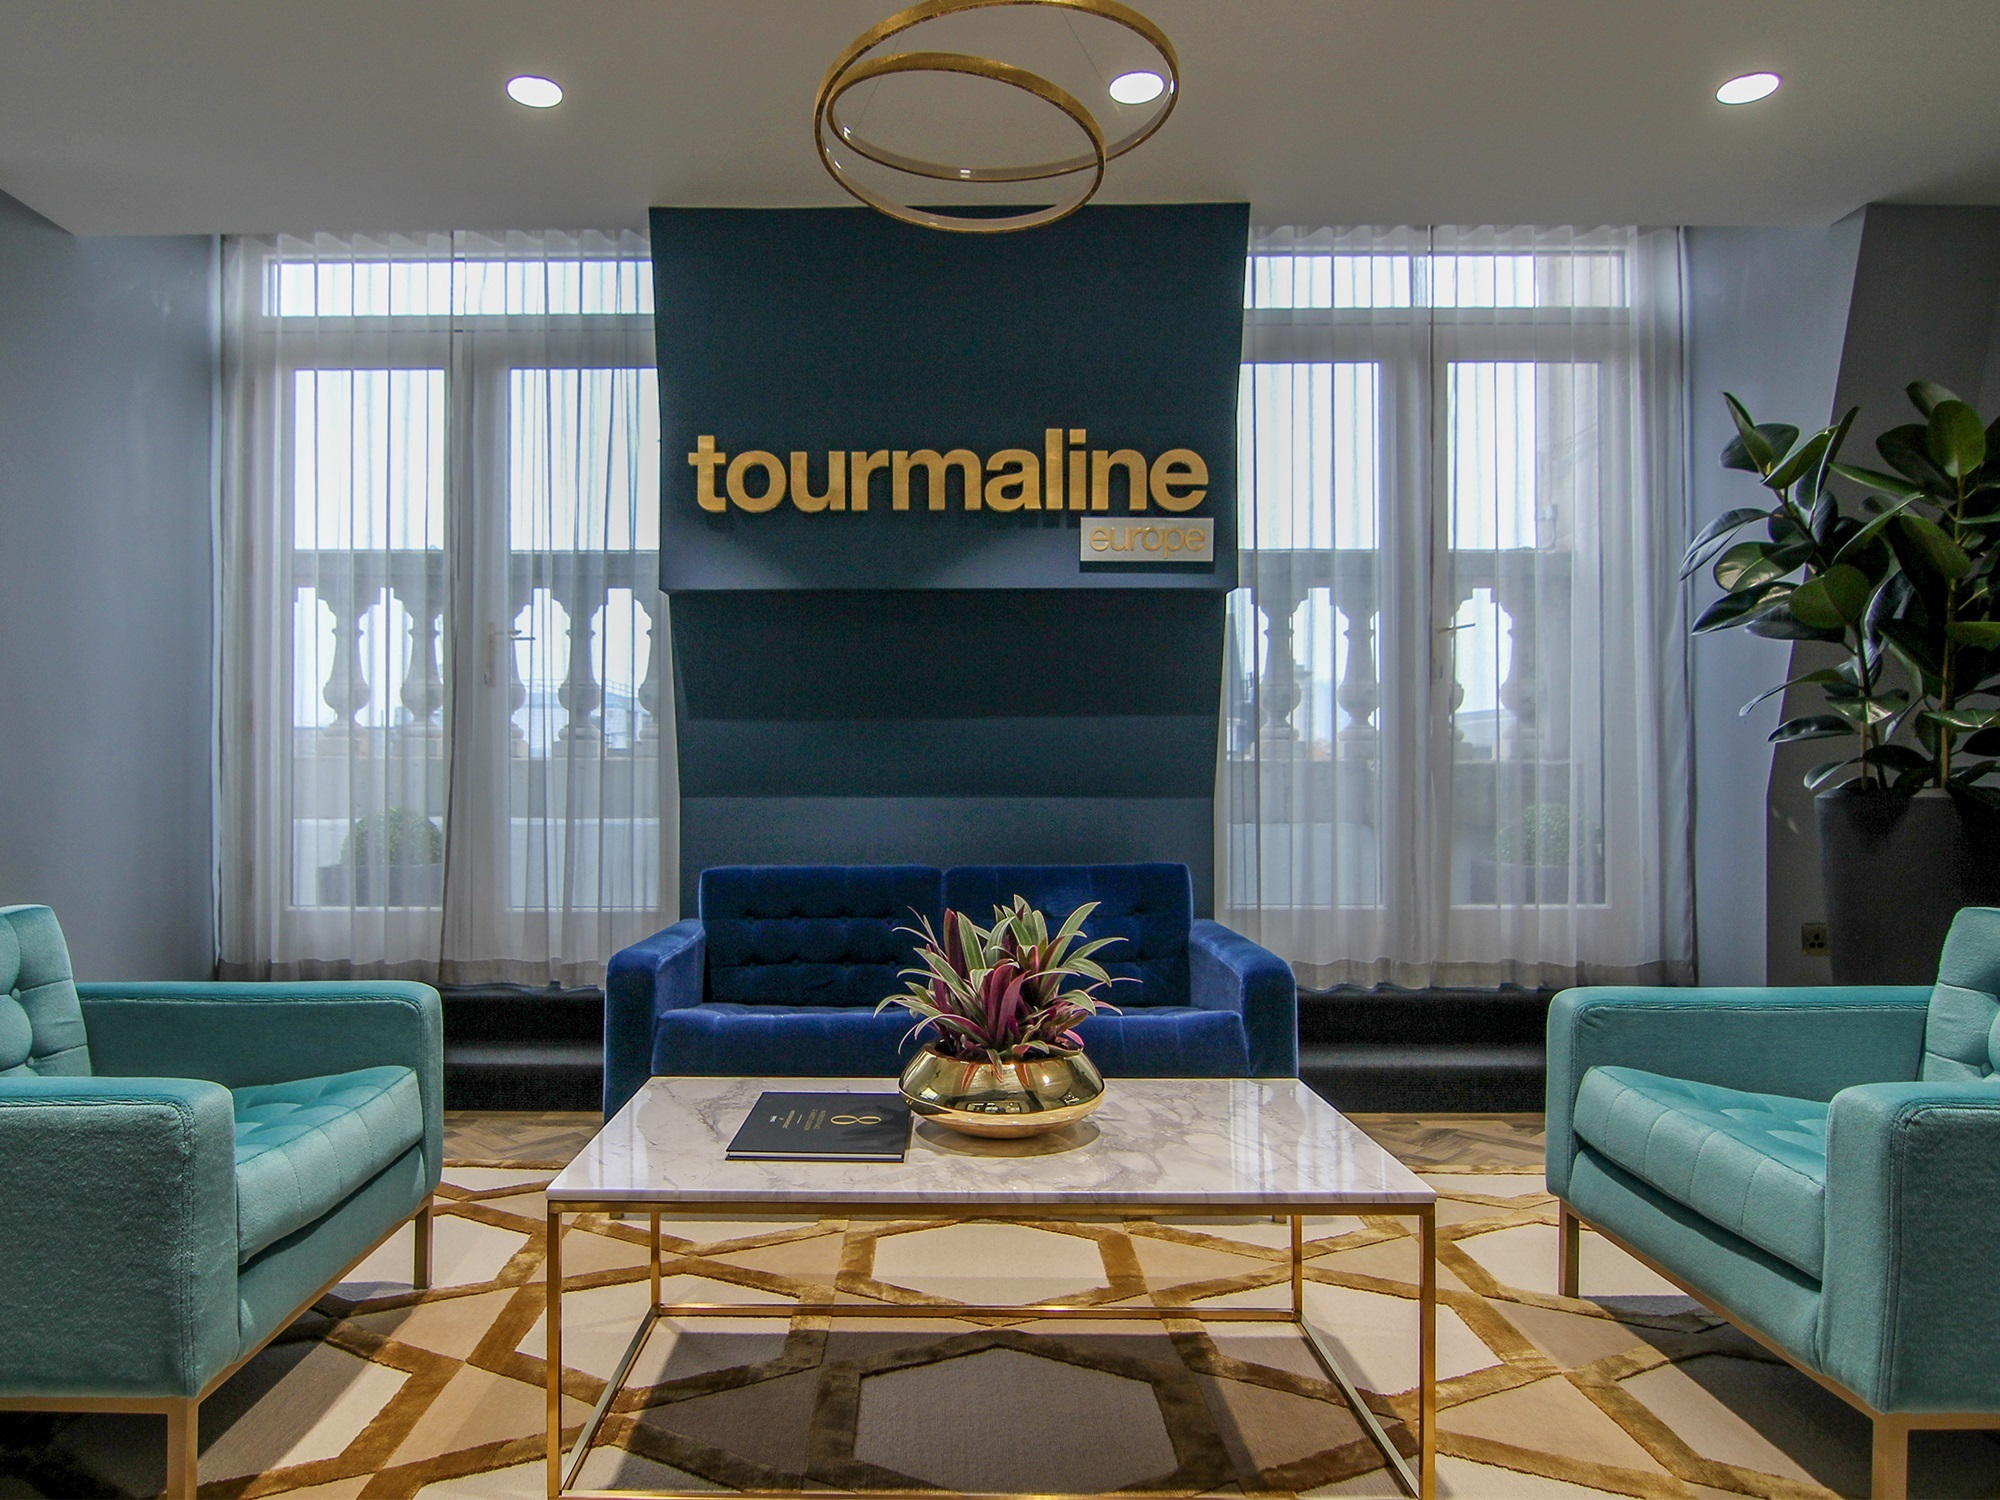 tourmaline europe waiting room